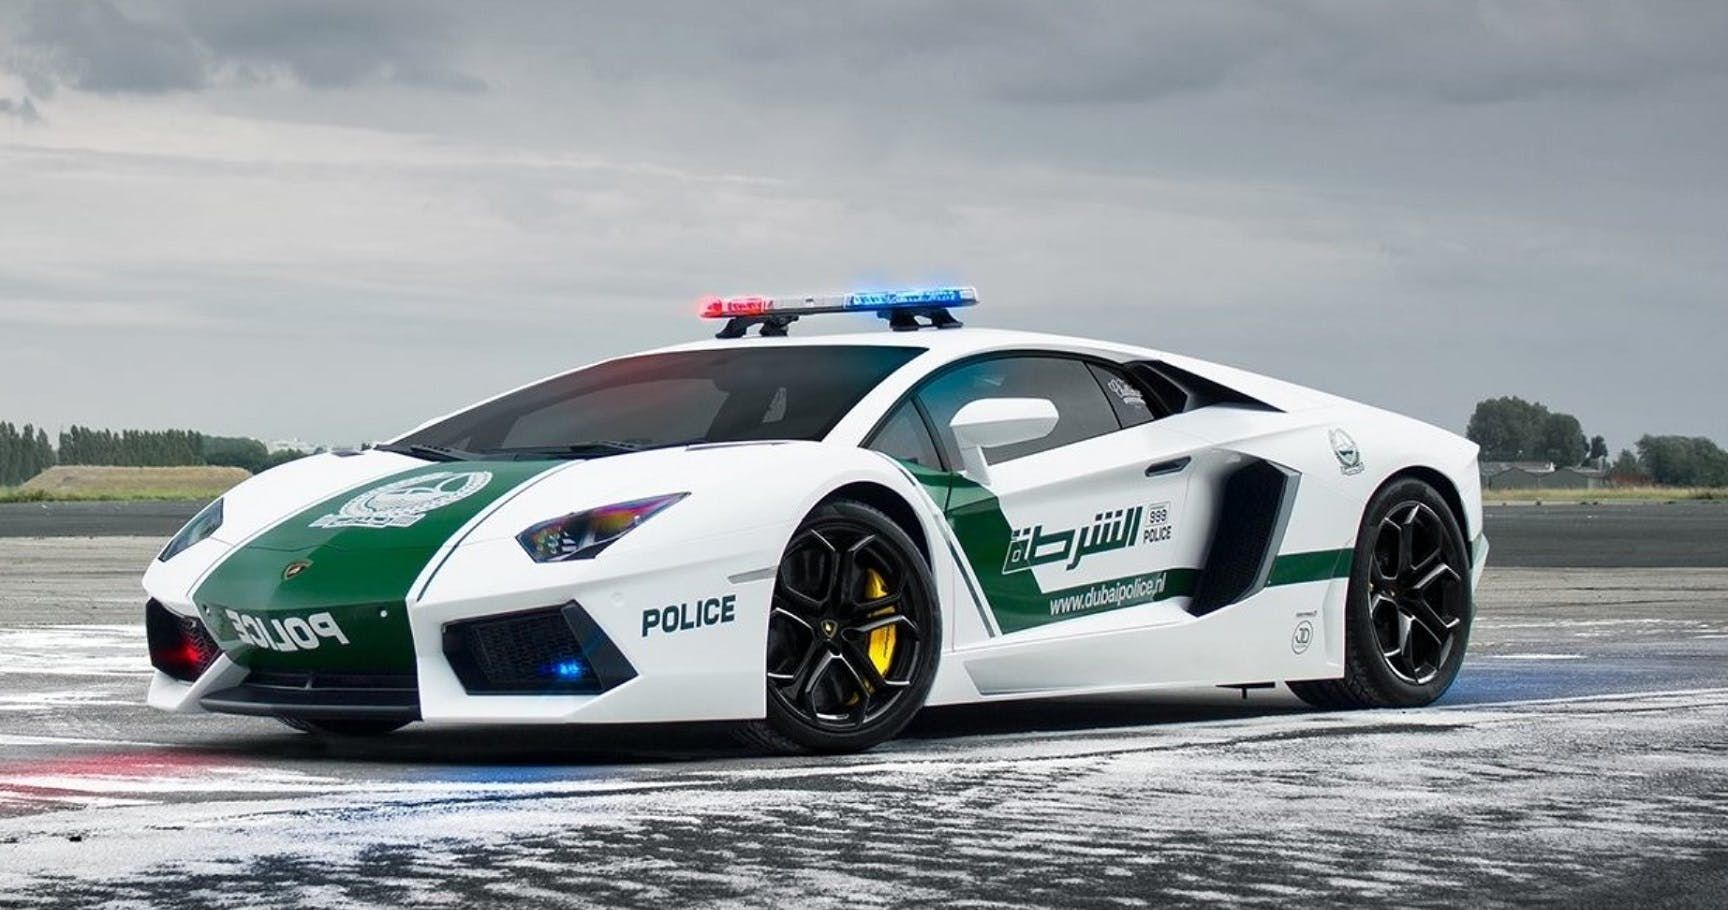 10 Cop Cars That Go 0 60 In Under 5 Seconds And 10 Over 10 Seconds